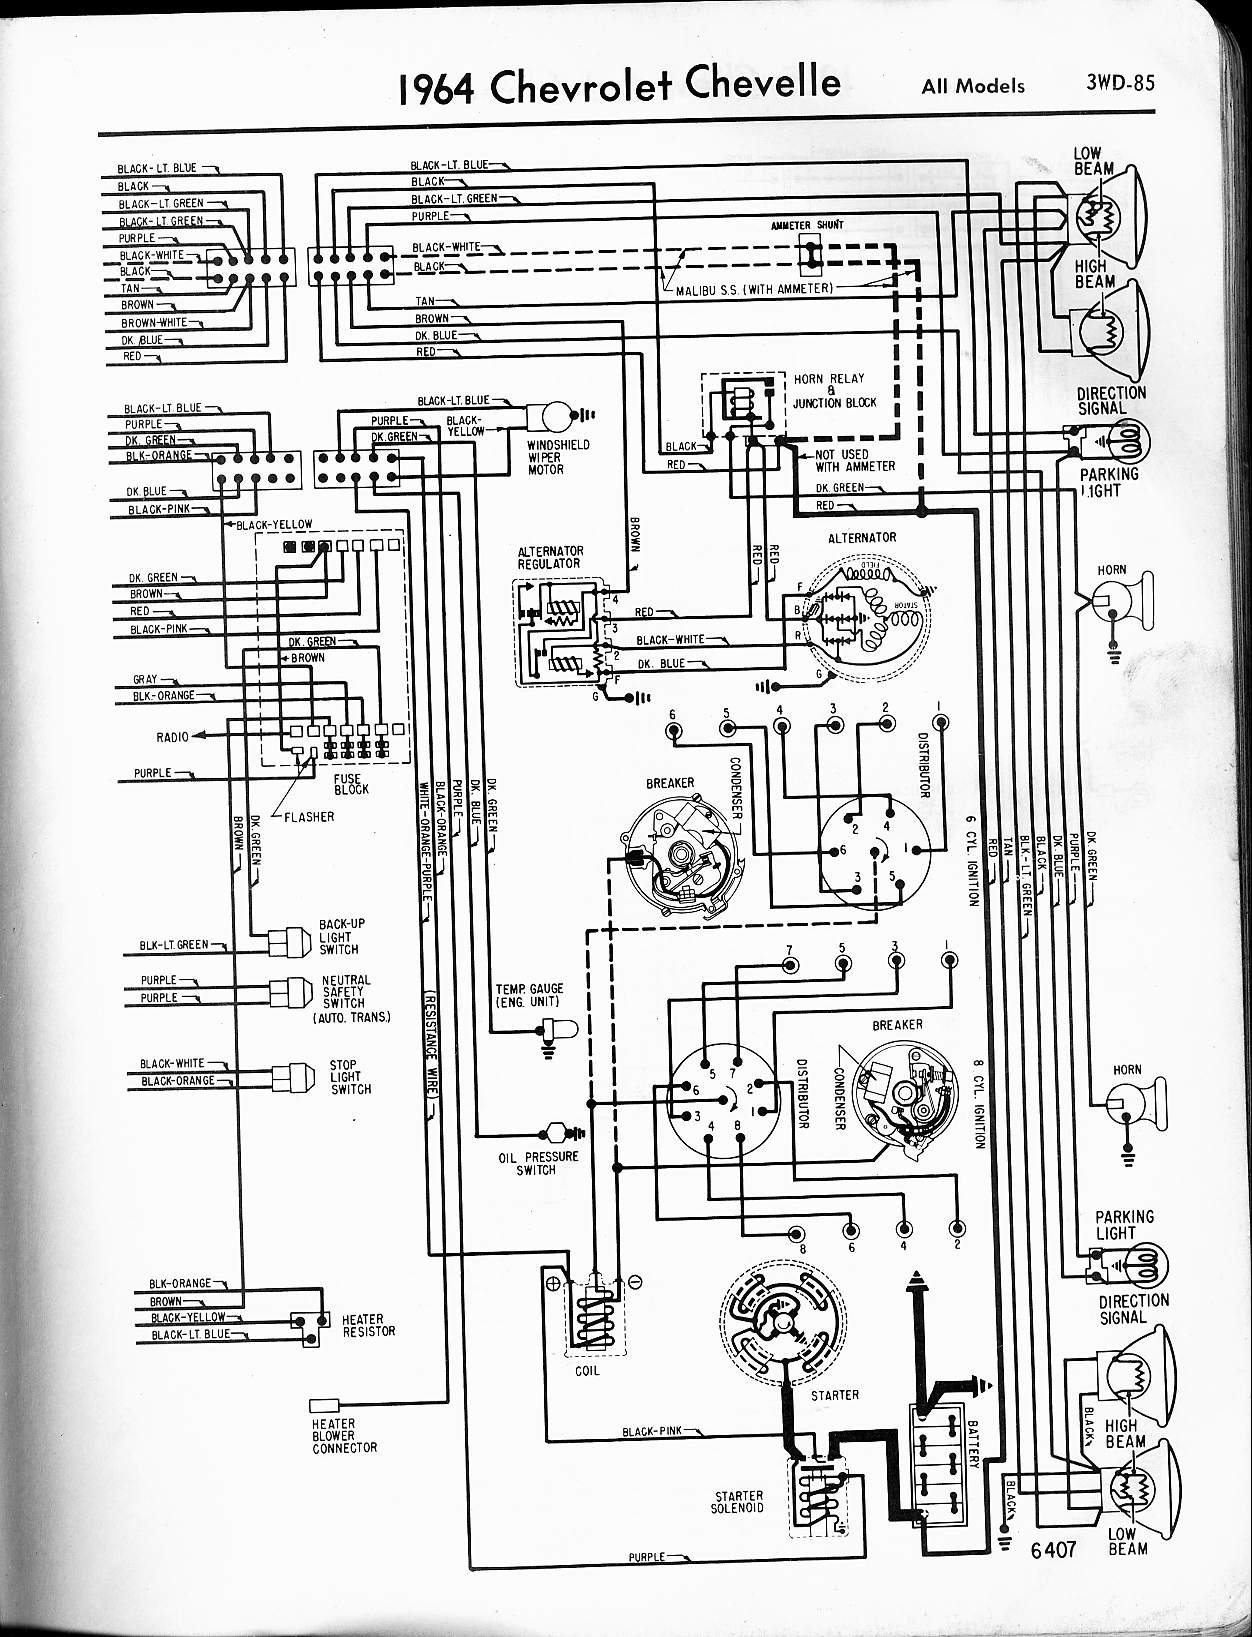 1969 Chevelle Wiring Harness | Schematic Diagram